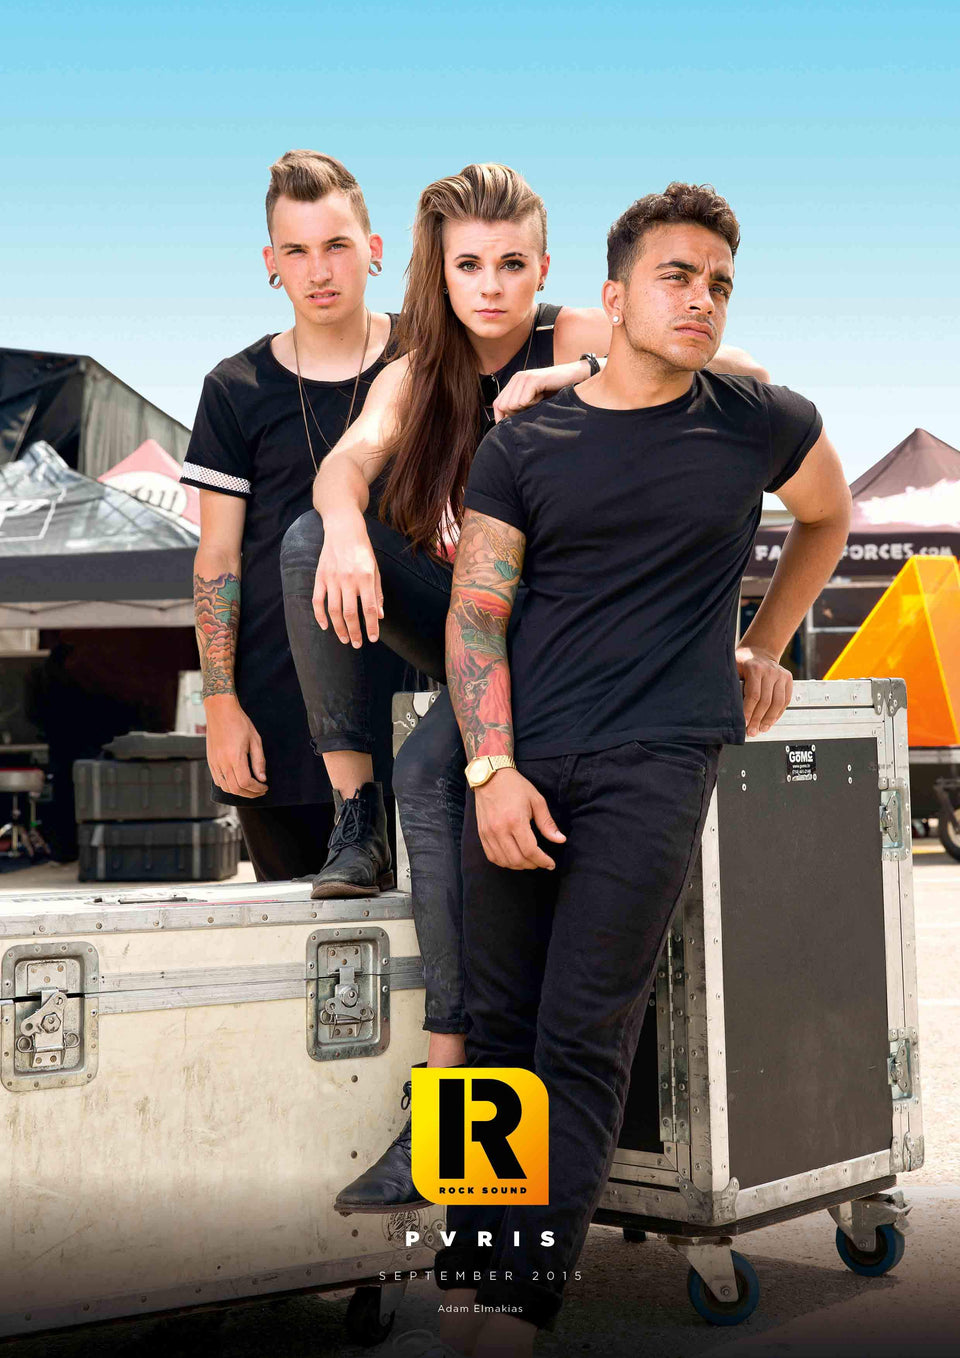 Rock Sound Issue 250.5 - PVRIS - Rock Sound Shop